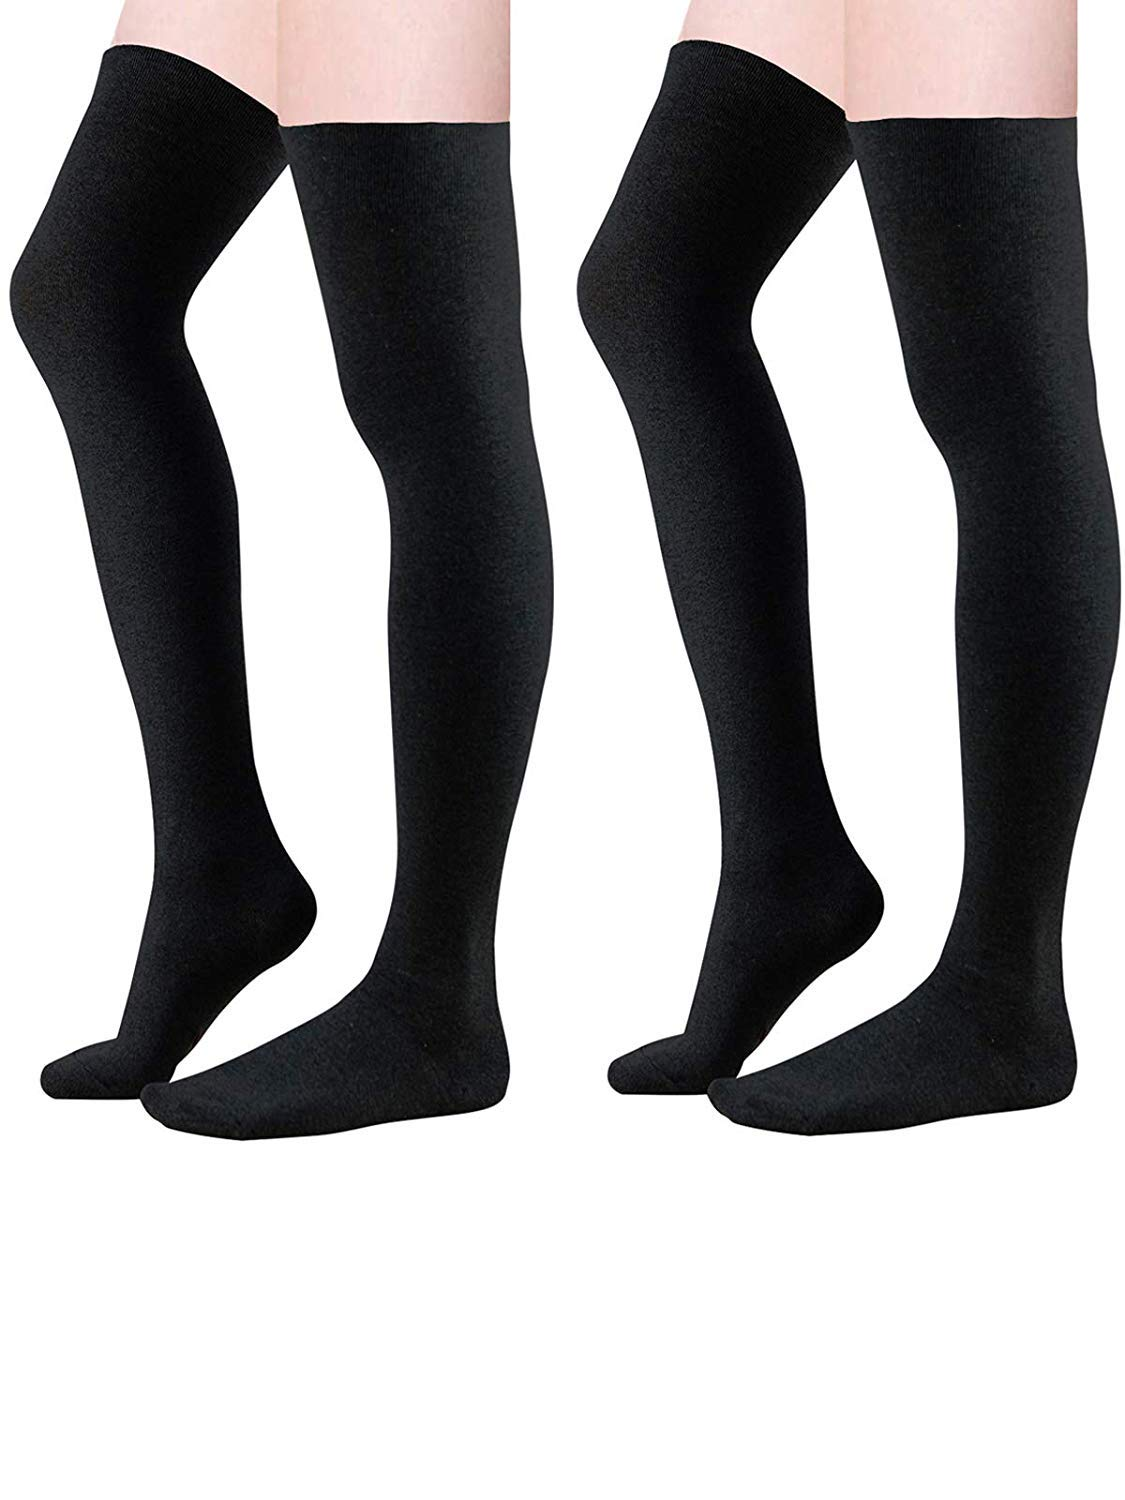 Zando Women Plus Size Thigh High Socks Over Knee Tube Stocking Sock Cotton High Leg Warmers Warm Cosplay Legging Sock 2 Pairs Black One Size